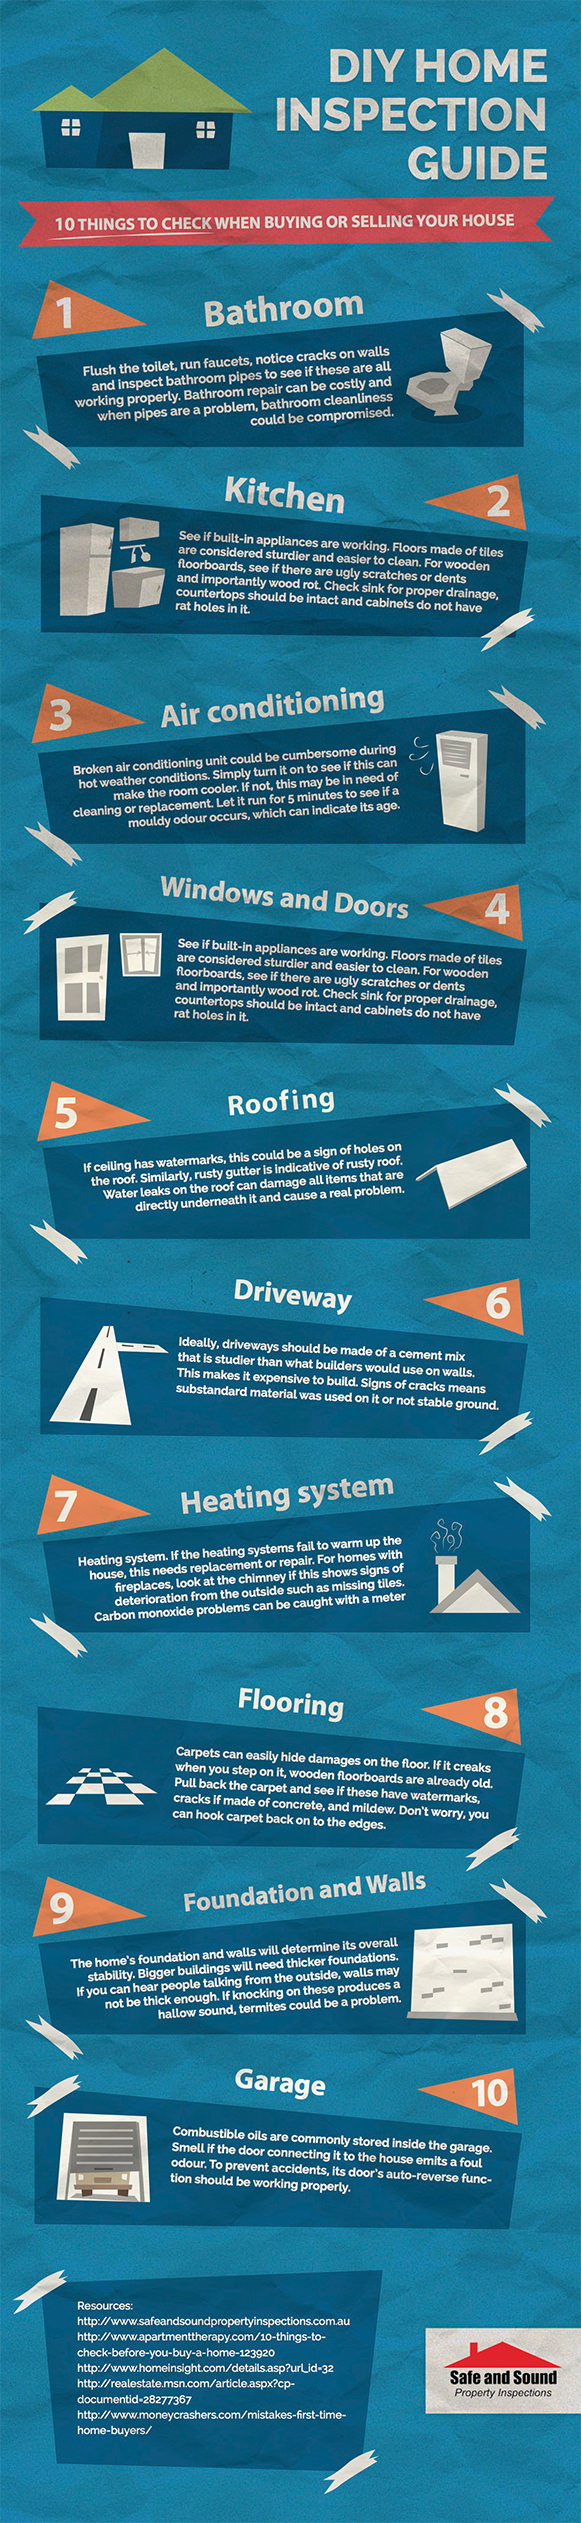 DIY Home Inspection Infographic